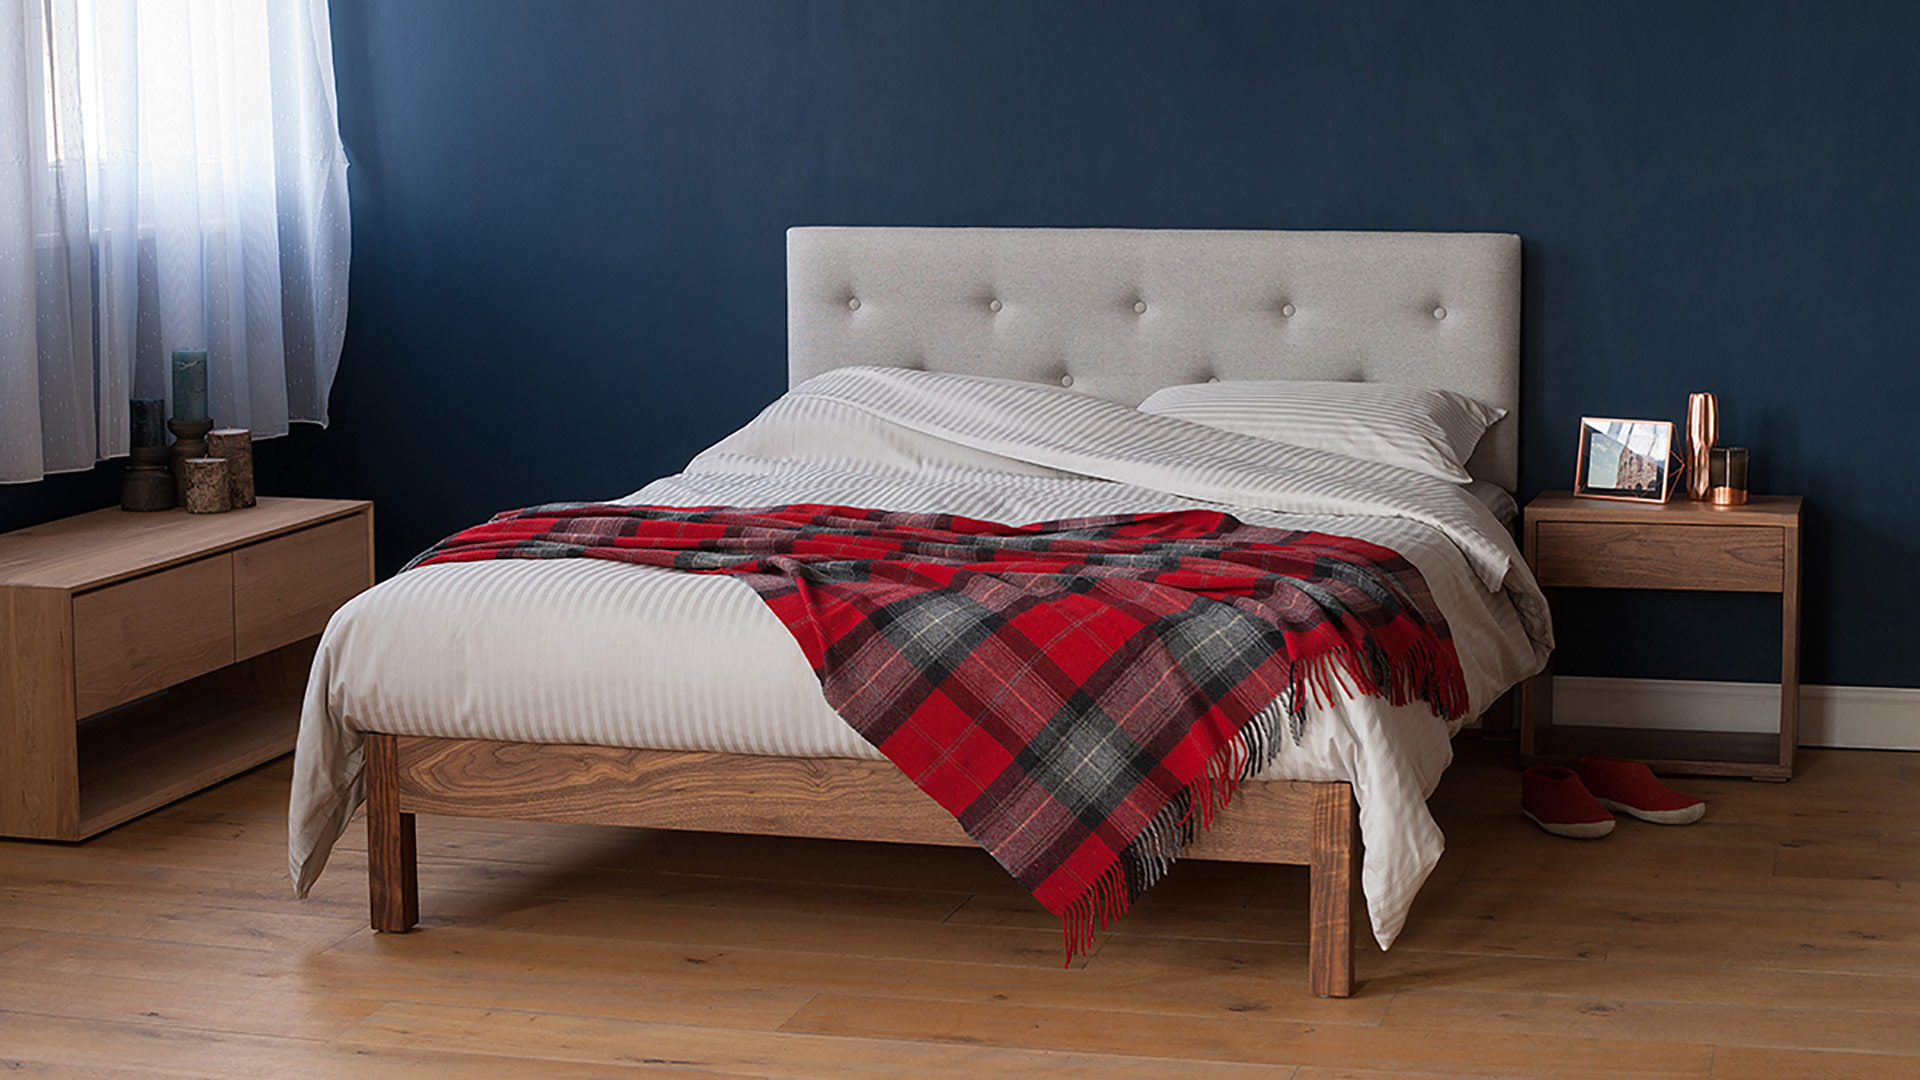 Arran bed a solid wooden bed with padded headboard available in a choice of wood.